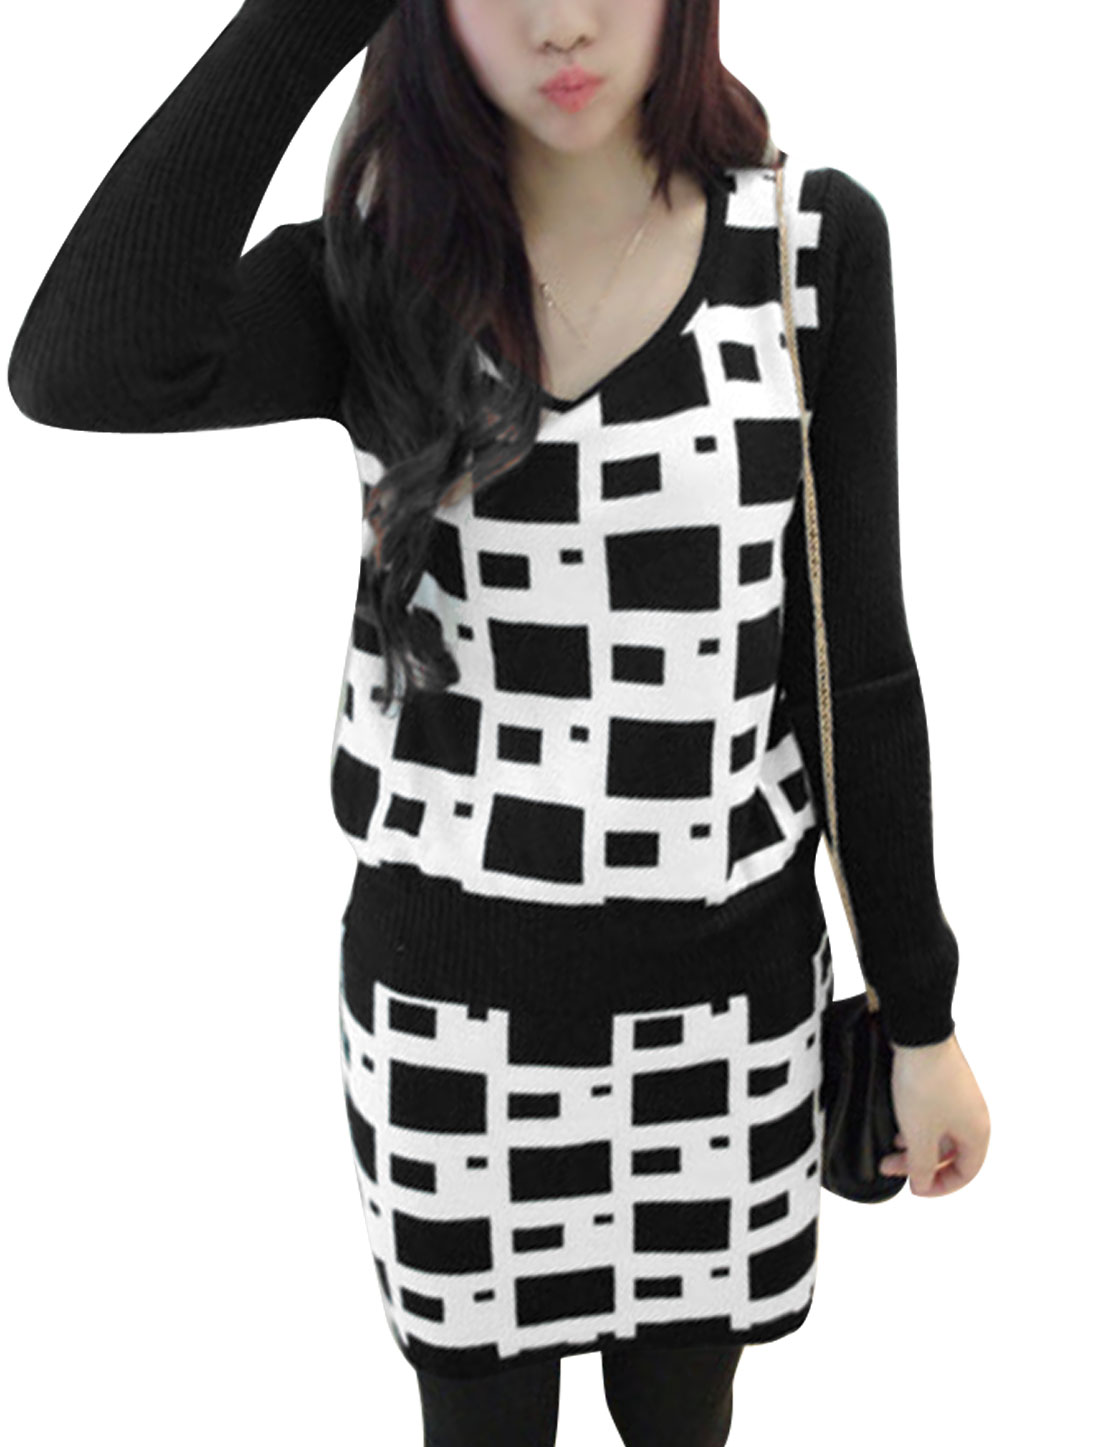 Lady Plaids Knit Long Sleeves Spliced Tunic Dress Black White XS